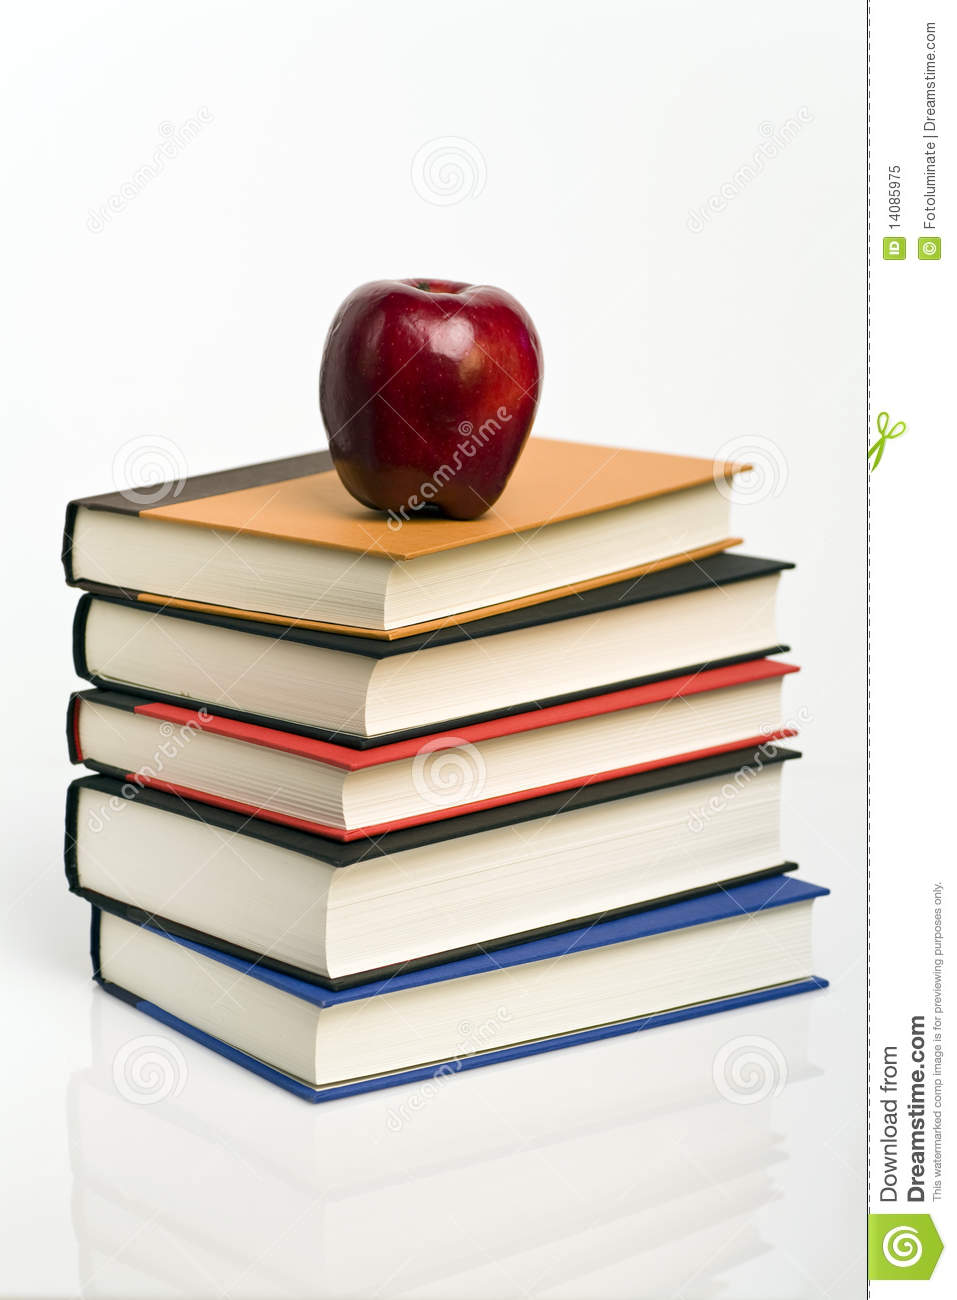 Research paper on apple stock